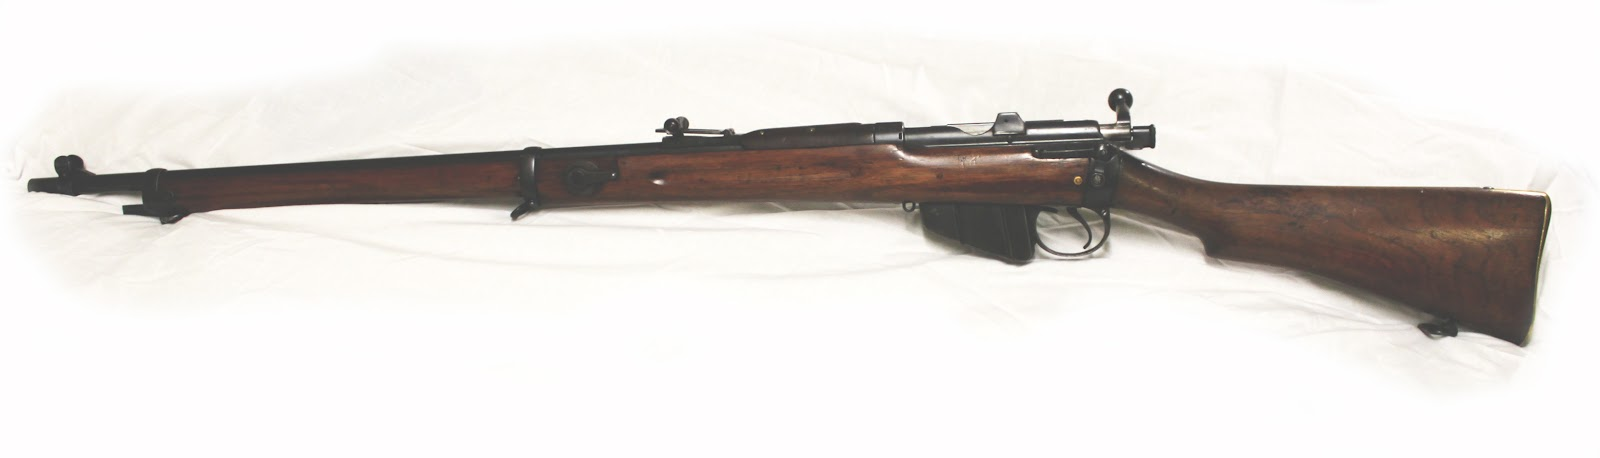 Lee MK1 rifle side view